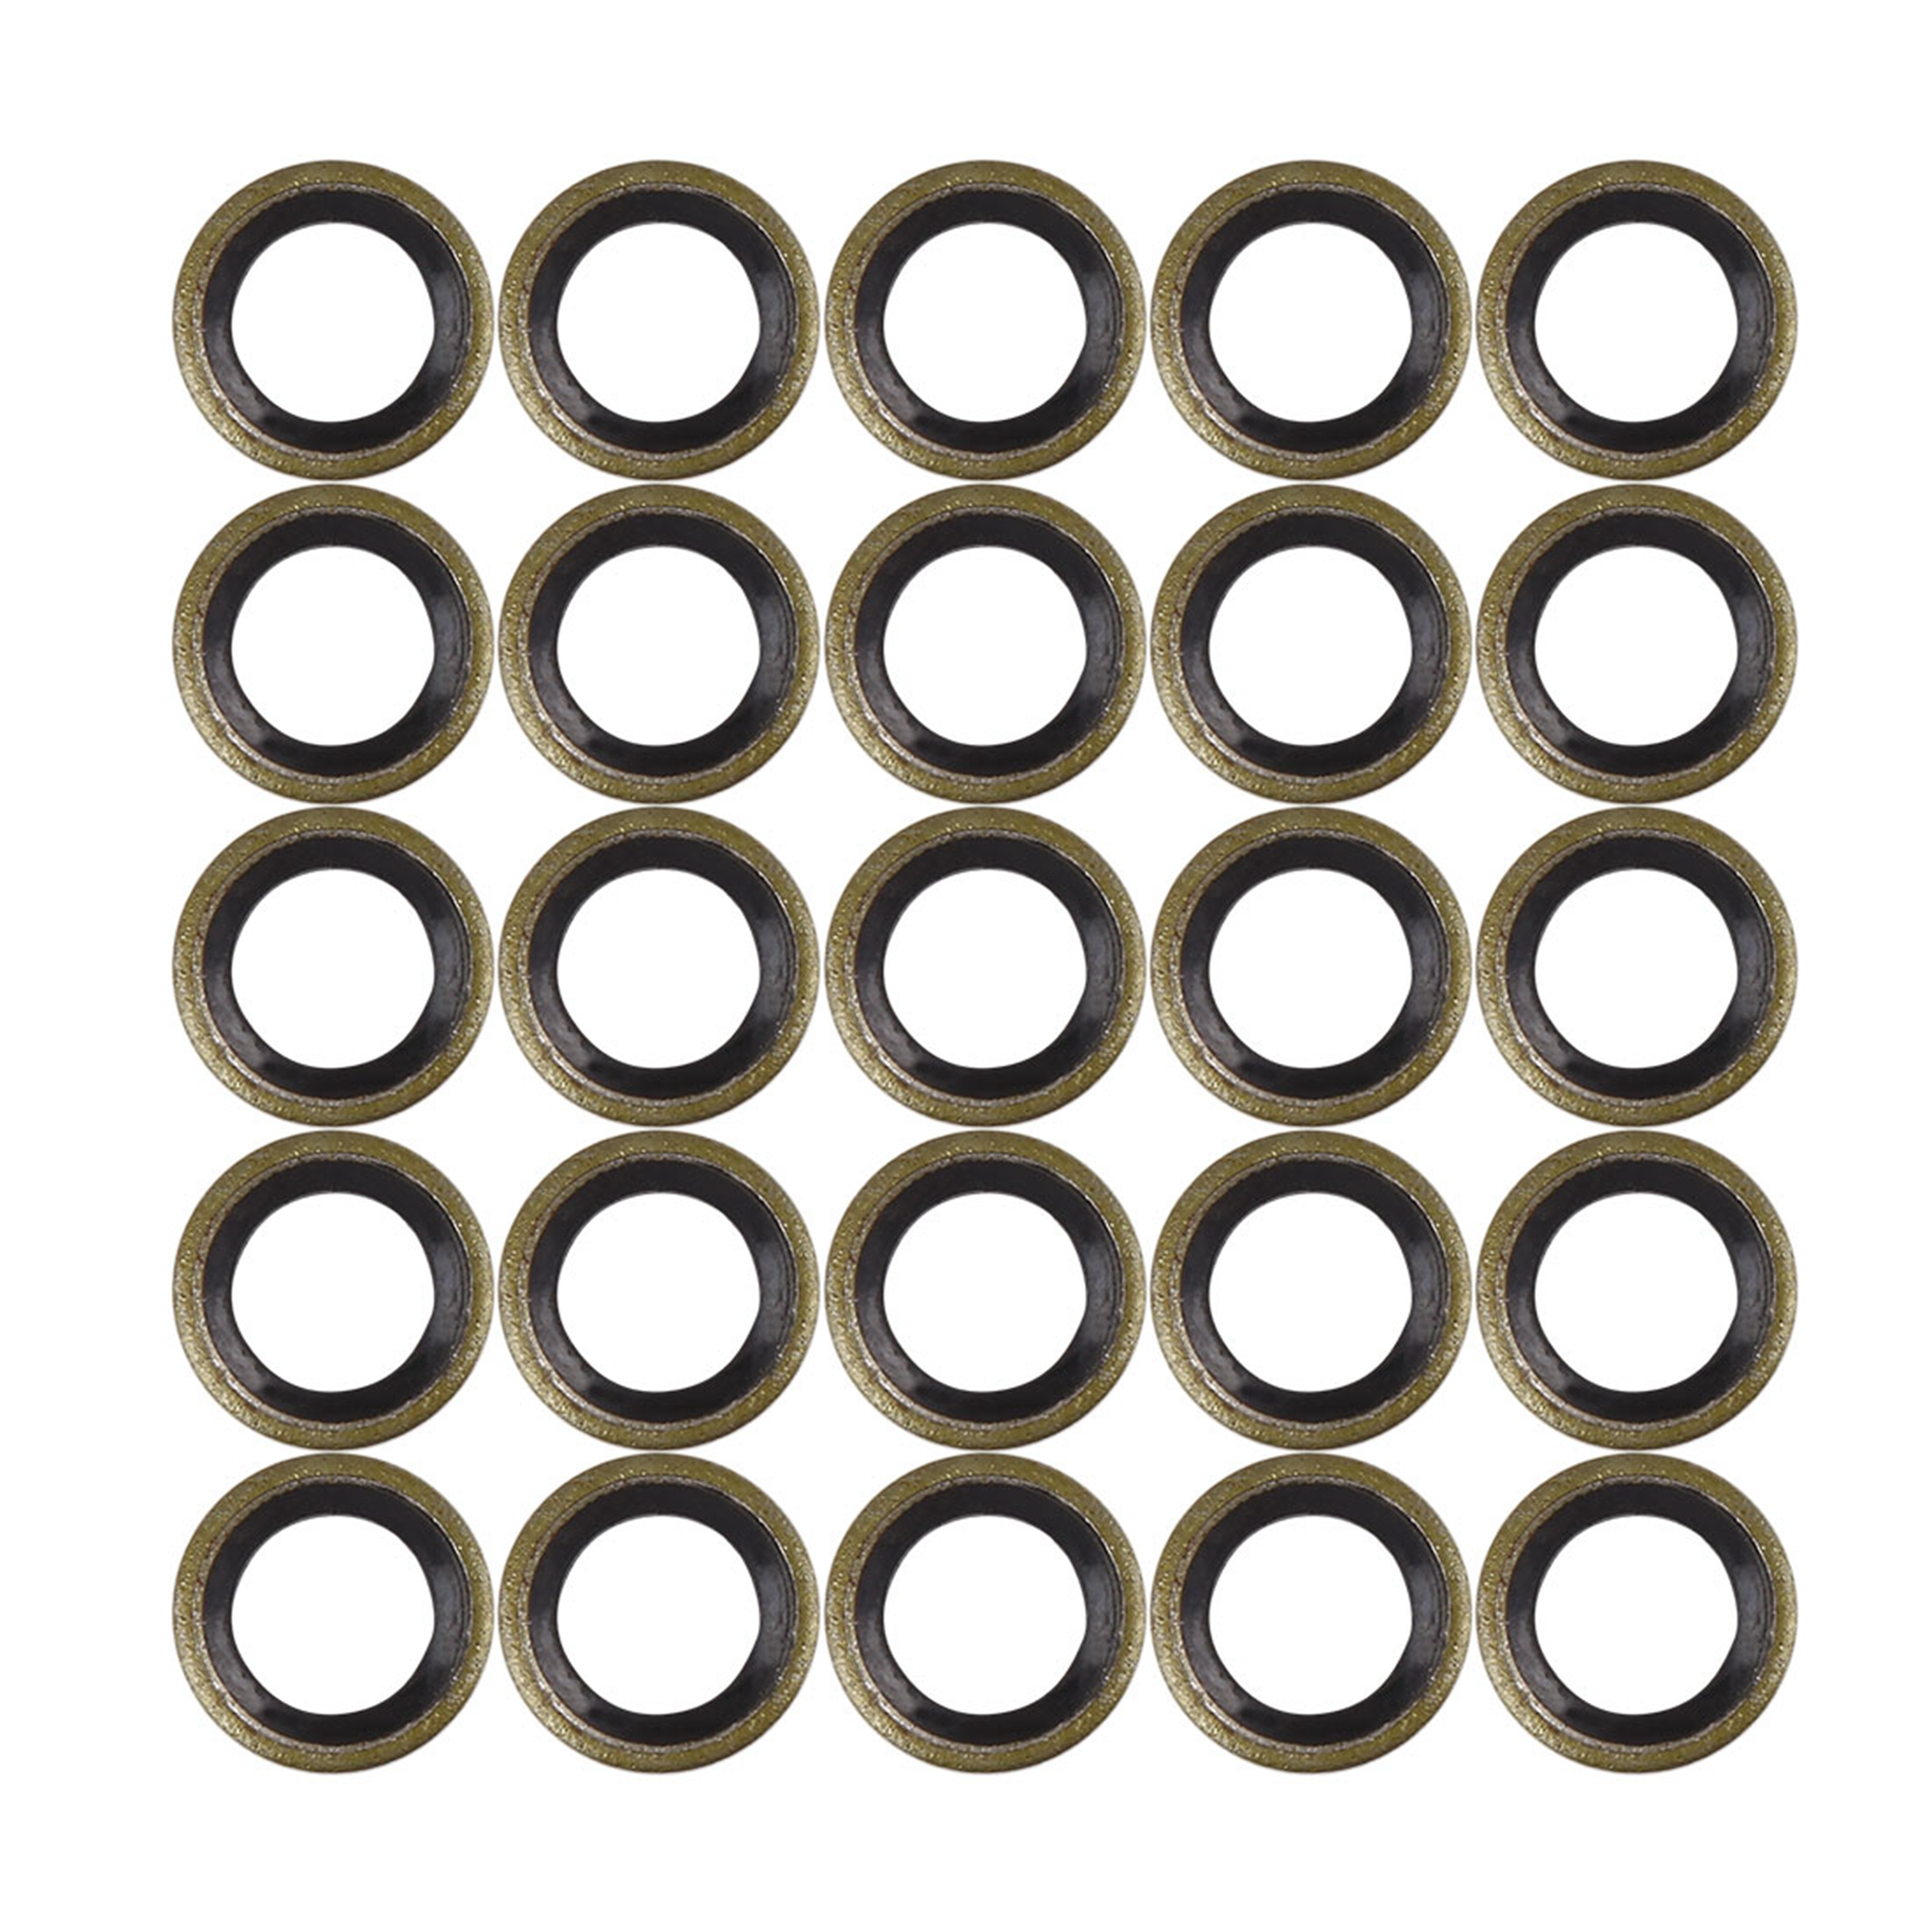 25pcs M8 Bronze Tone Car Engine Oil Drain Crush Flat Bonded Washer Gaskets